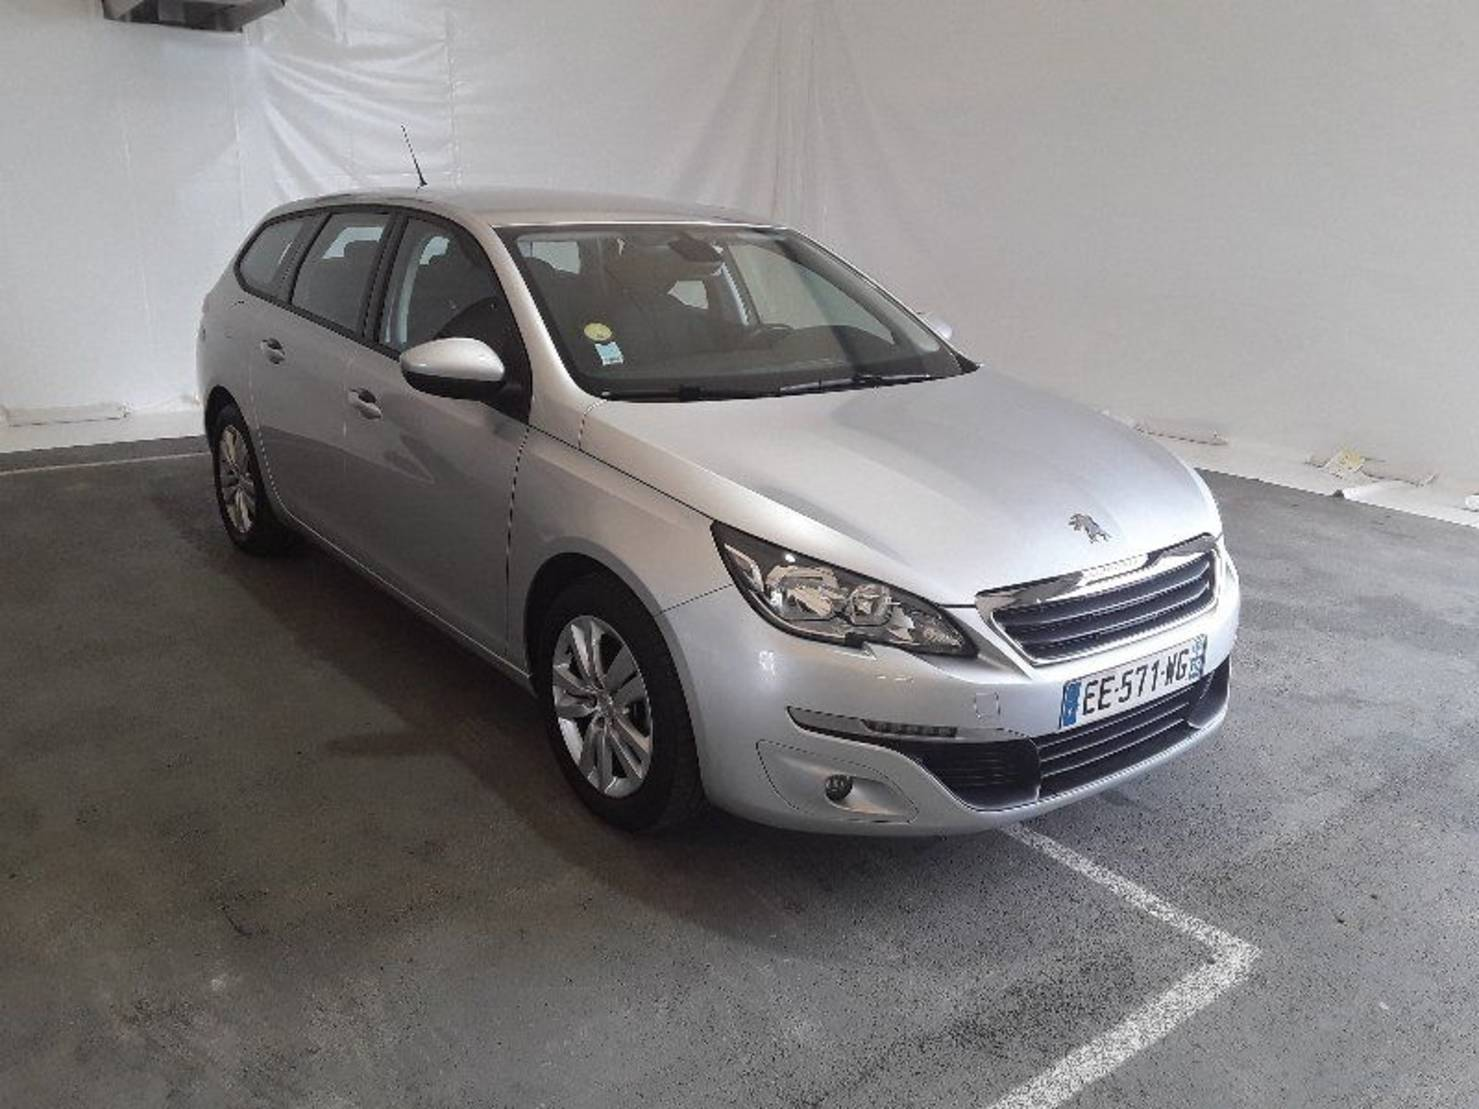 Peugeot 308 SW 1.6 BlueHDi 100ch S&S BVM5, Active Business detail1